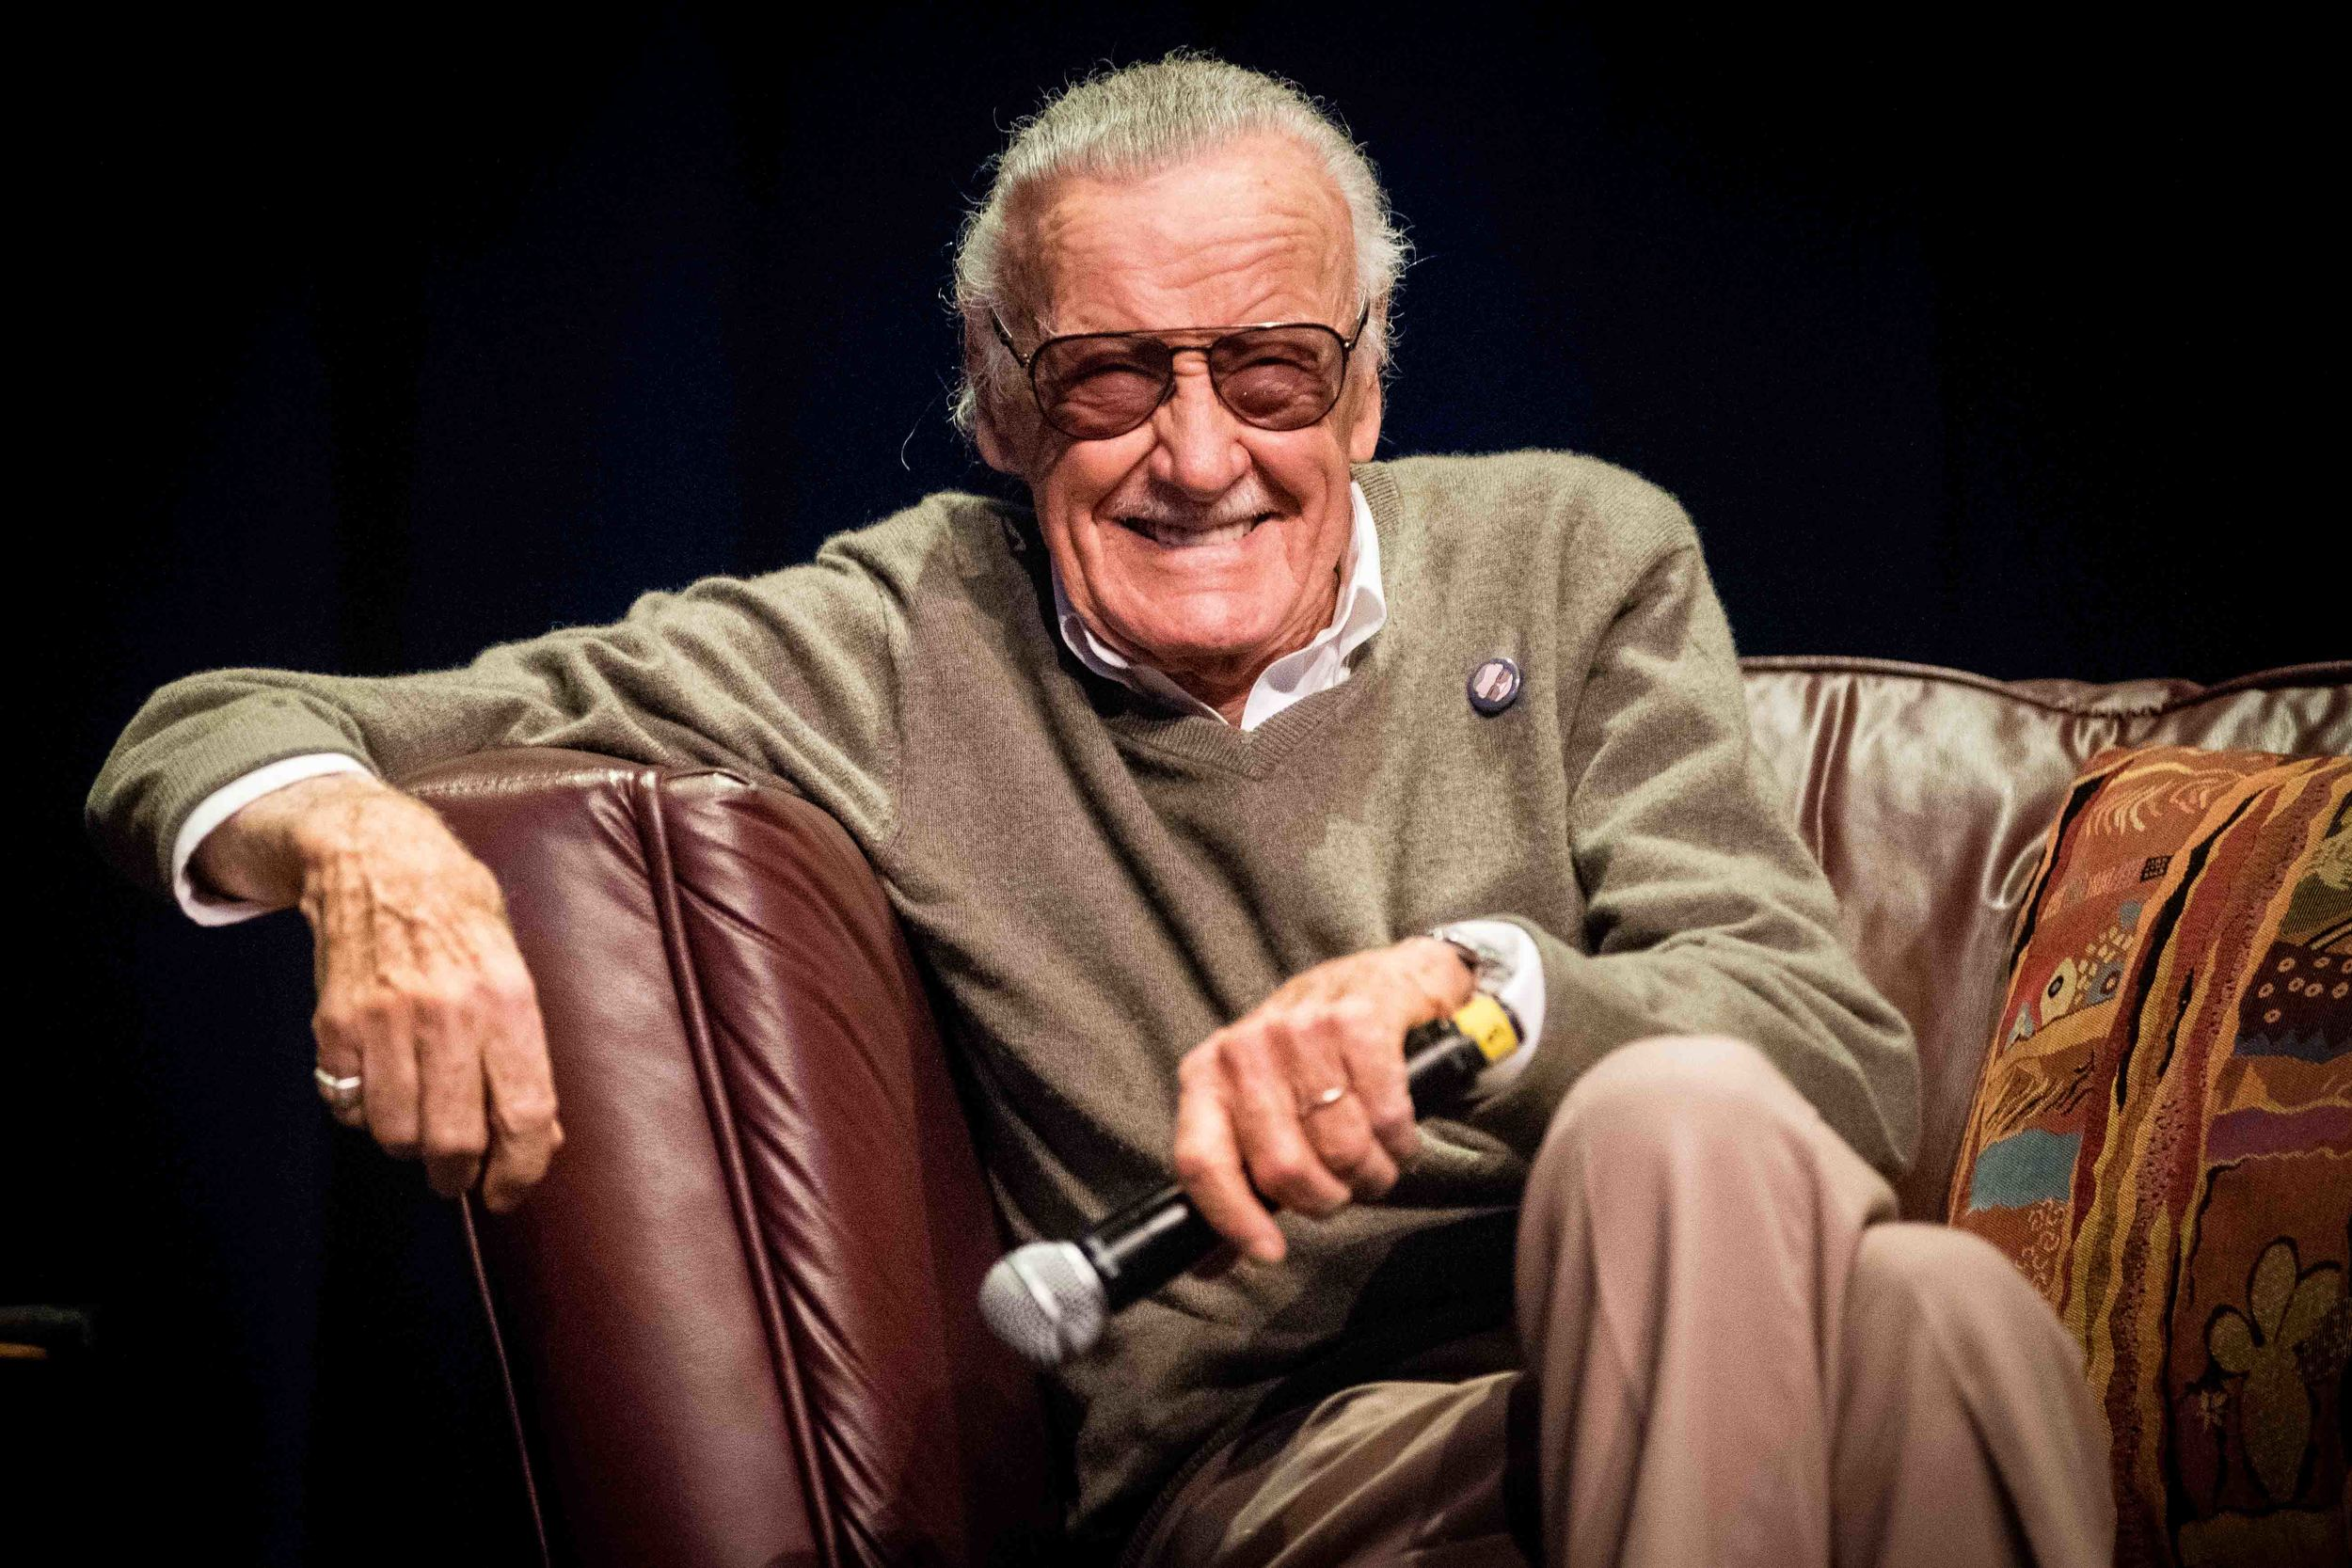 Marvel legend Stan Lee speaks to California State University, Long Beach students during the Associated Students, Inc. event An Evening with Stan Lee on Monday, Nov. 16, 2015 at the Carpenter Performing Arts Center in Long Beach, Calif. (Michael Ares/ Daily 49er)